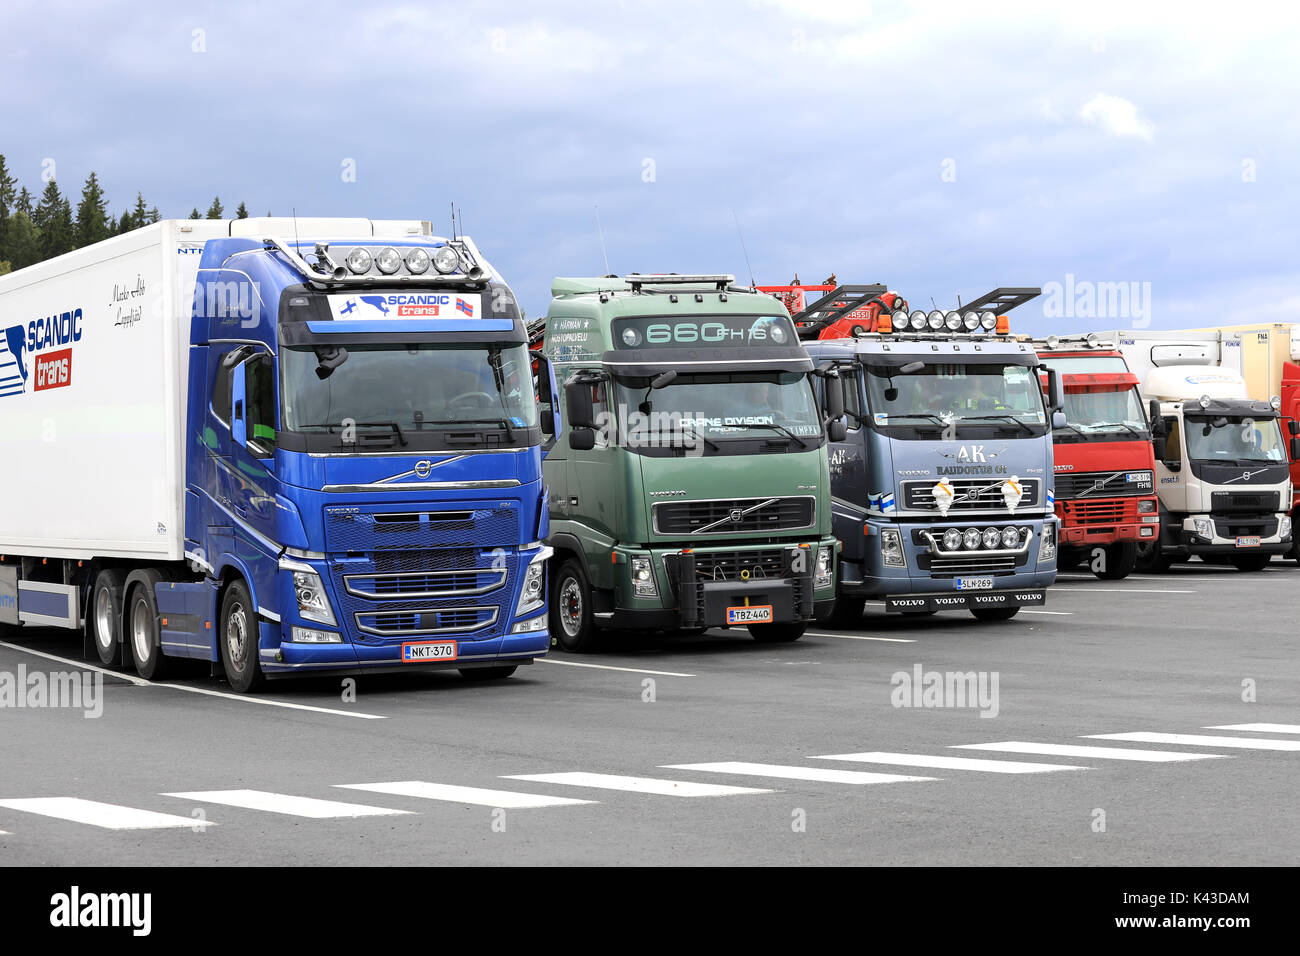 FORSSA, FINLAND - AUGUST 25, 2017: Colorful Volvo trucks parked on the asphalt yard of a truck stop on a cloudy day. - Stock Image